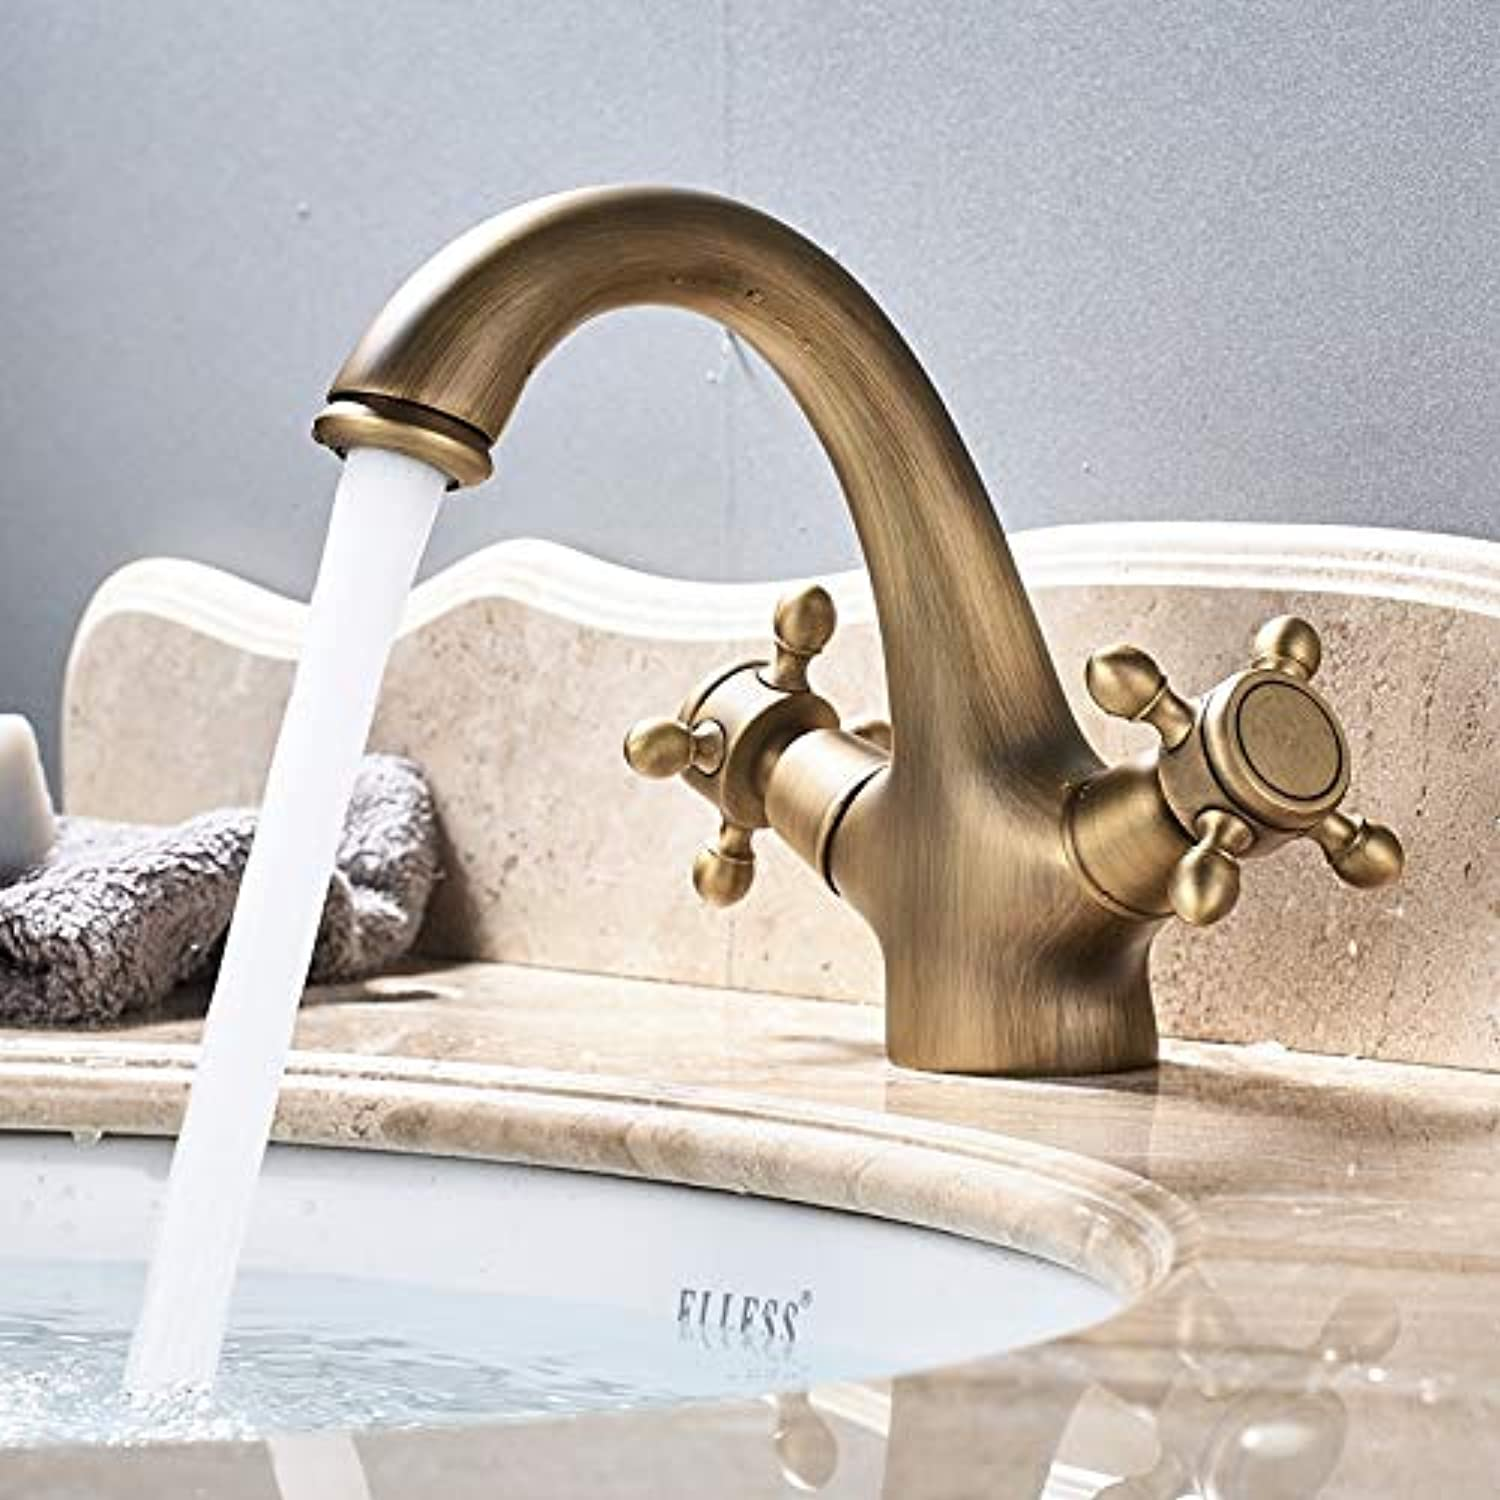 Decorry Antique Brass Basin Faucet Bathroom Mixer Tap Bathroom Brass Bathroom Single Handle Single Hole Classic Stylish Water Tap